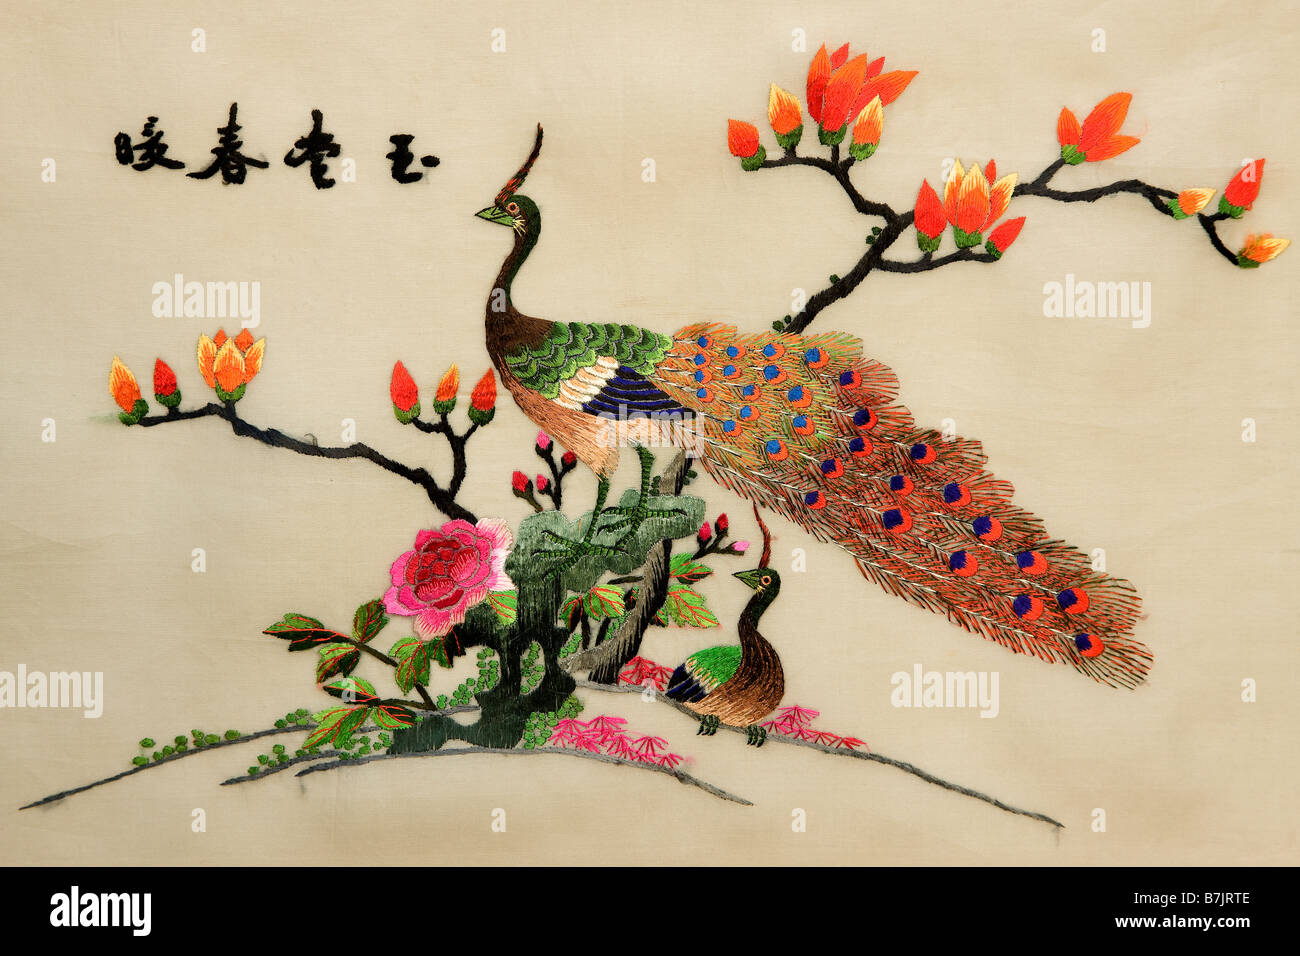 Colourful chinese silk embroidery of peacocks and bush in flower with text 'The hall is full of fortune in warm - Stock Image